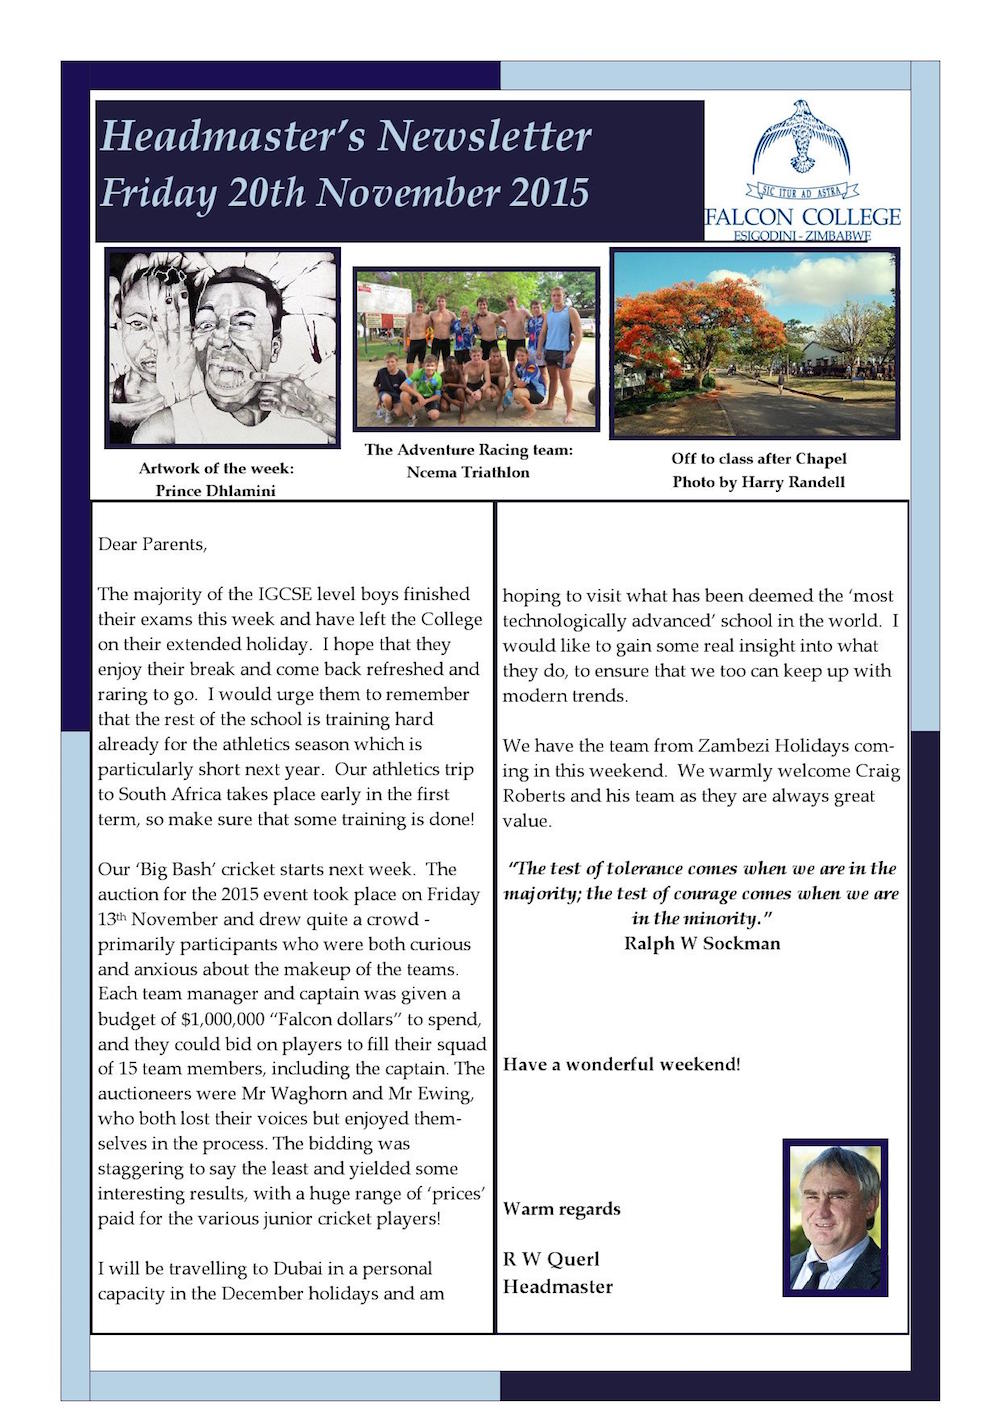 Headmaster's Newsletter Friday 20th November 2015 edited_1